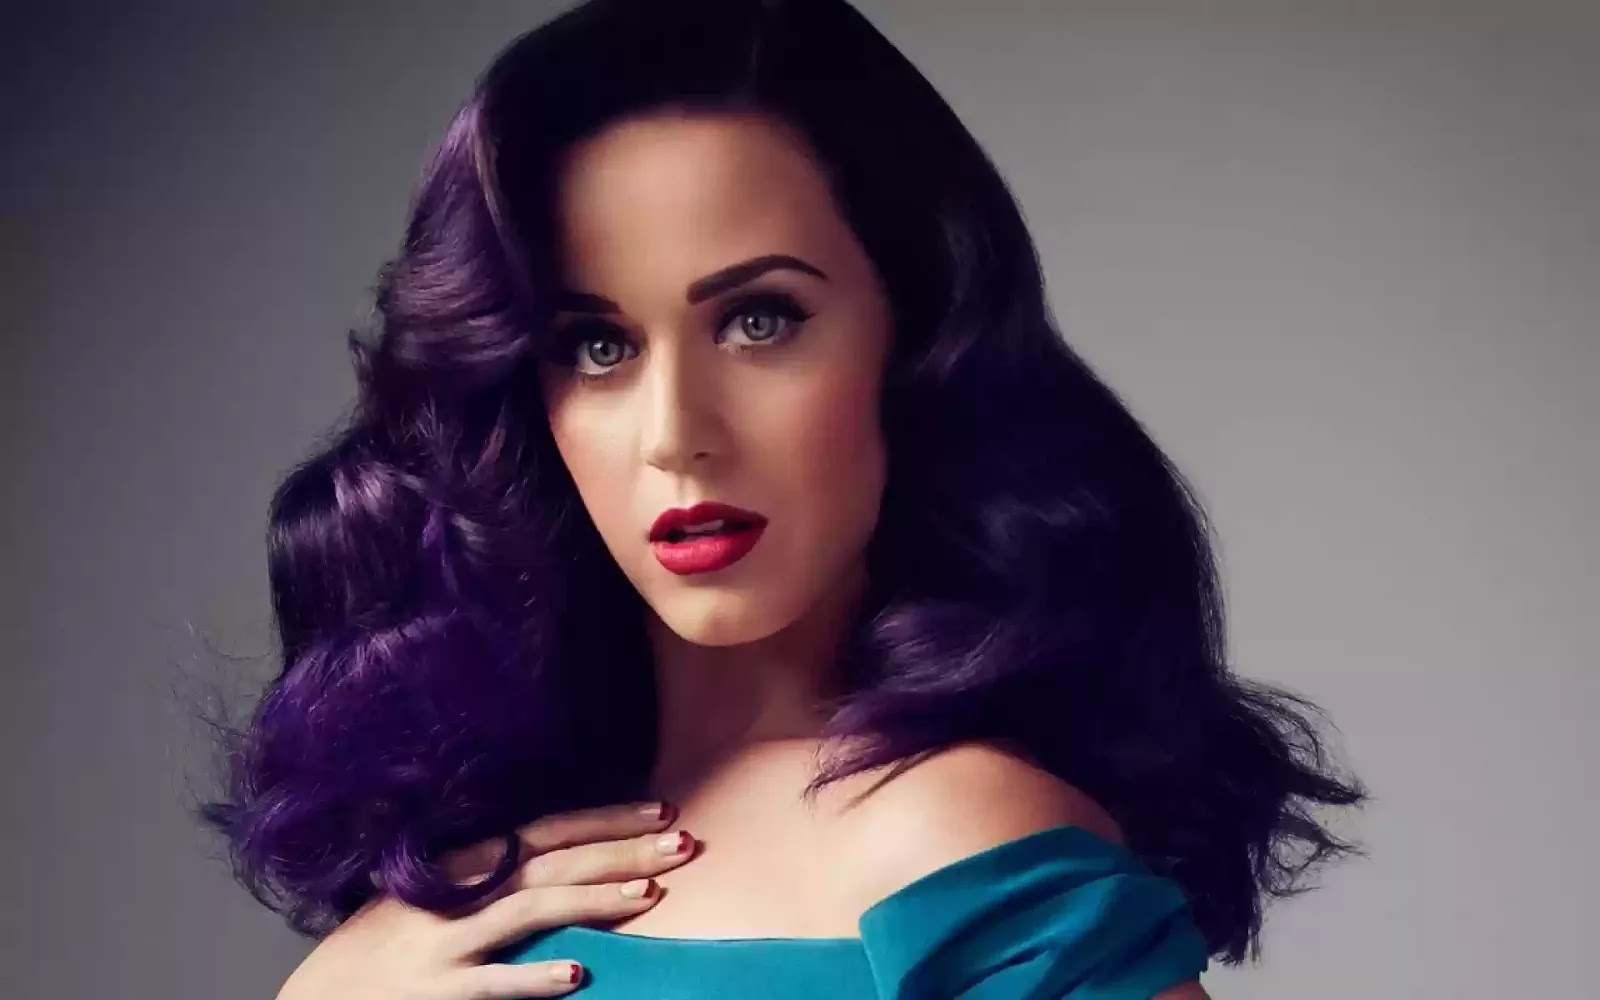 List Of Female Singers Top 8 Most Popular Female Singers In The World 2016 List